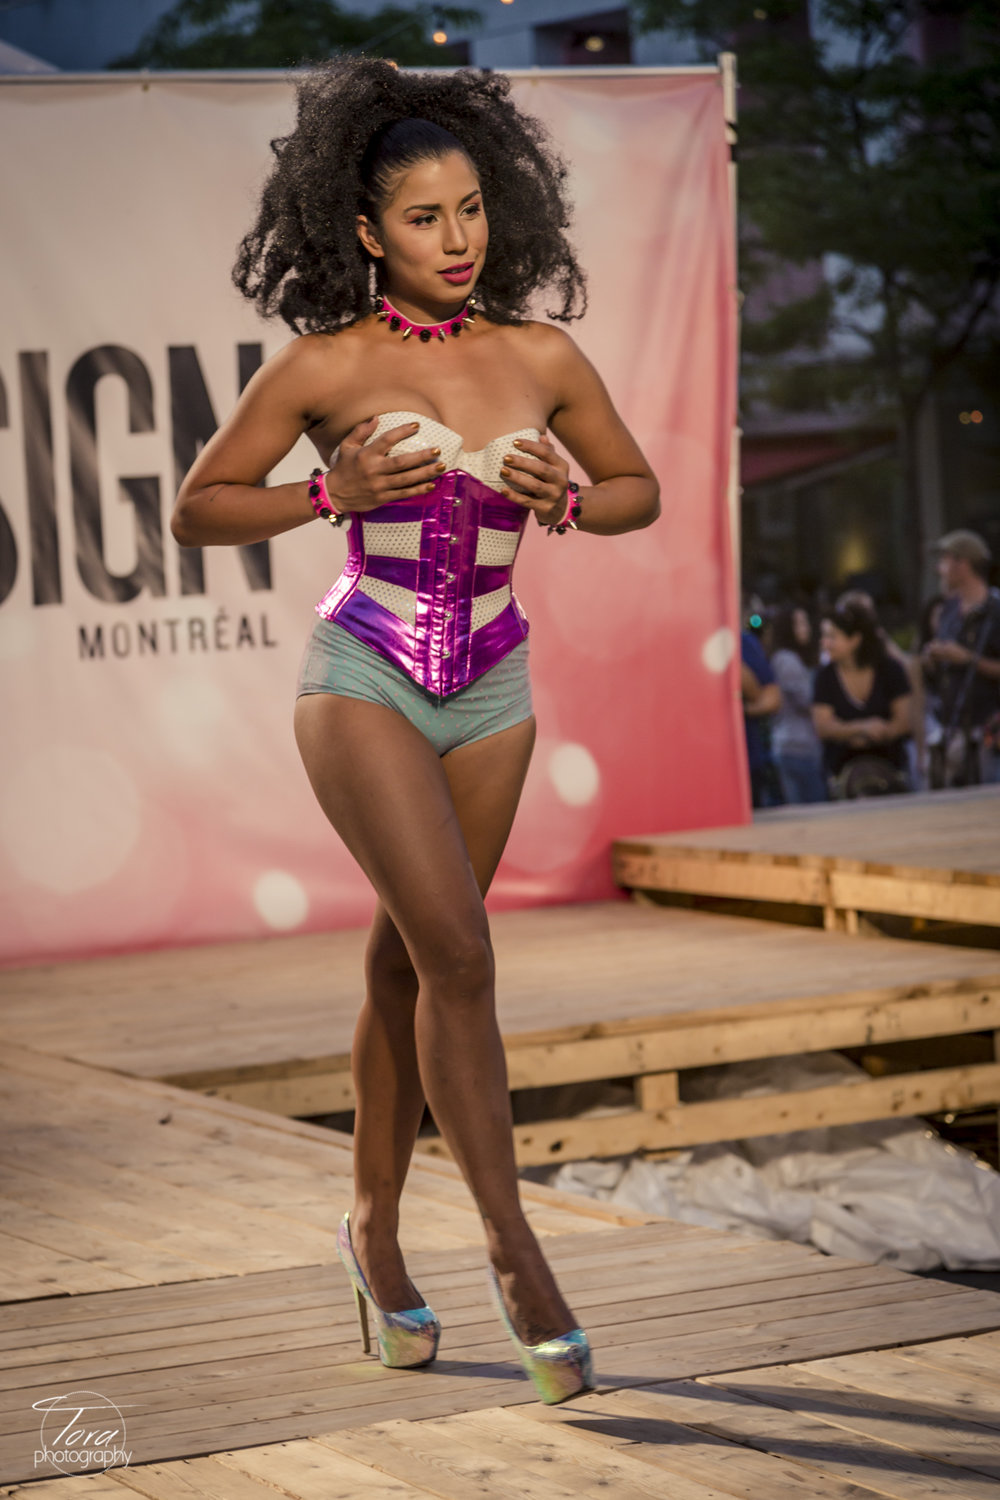 Tora Photography - Montreal Mode et Design Festival -77.jpg